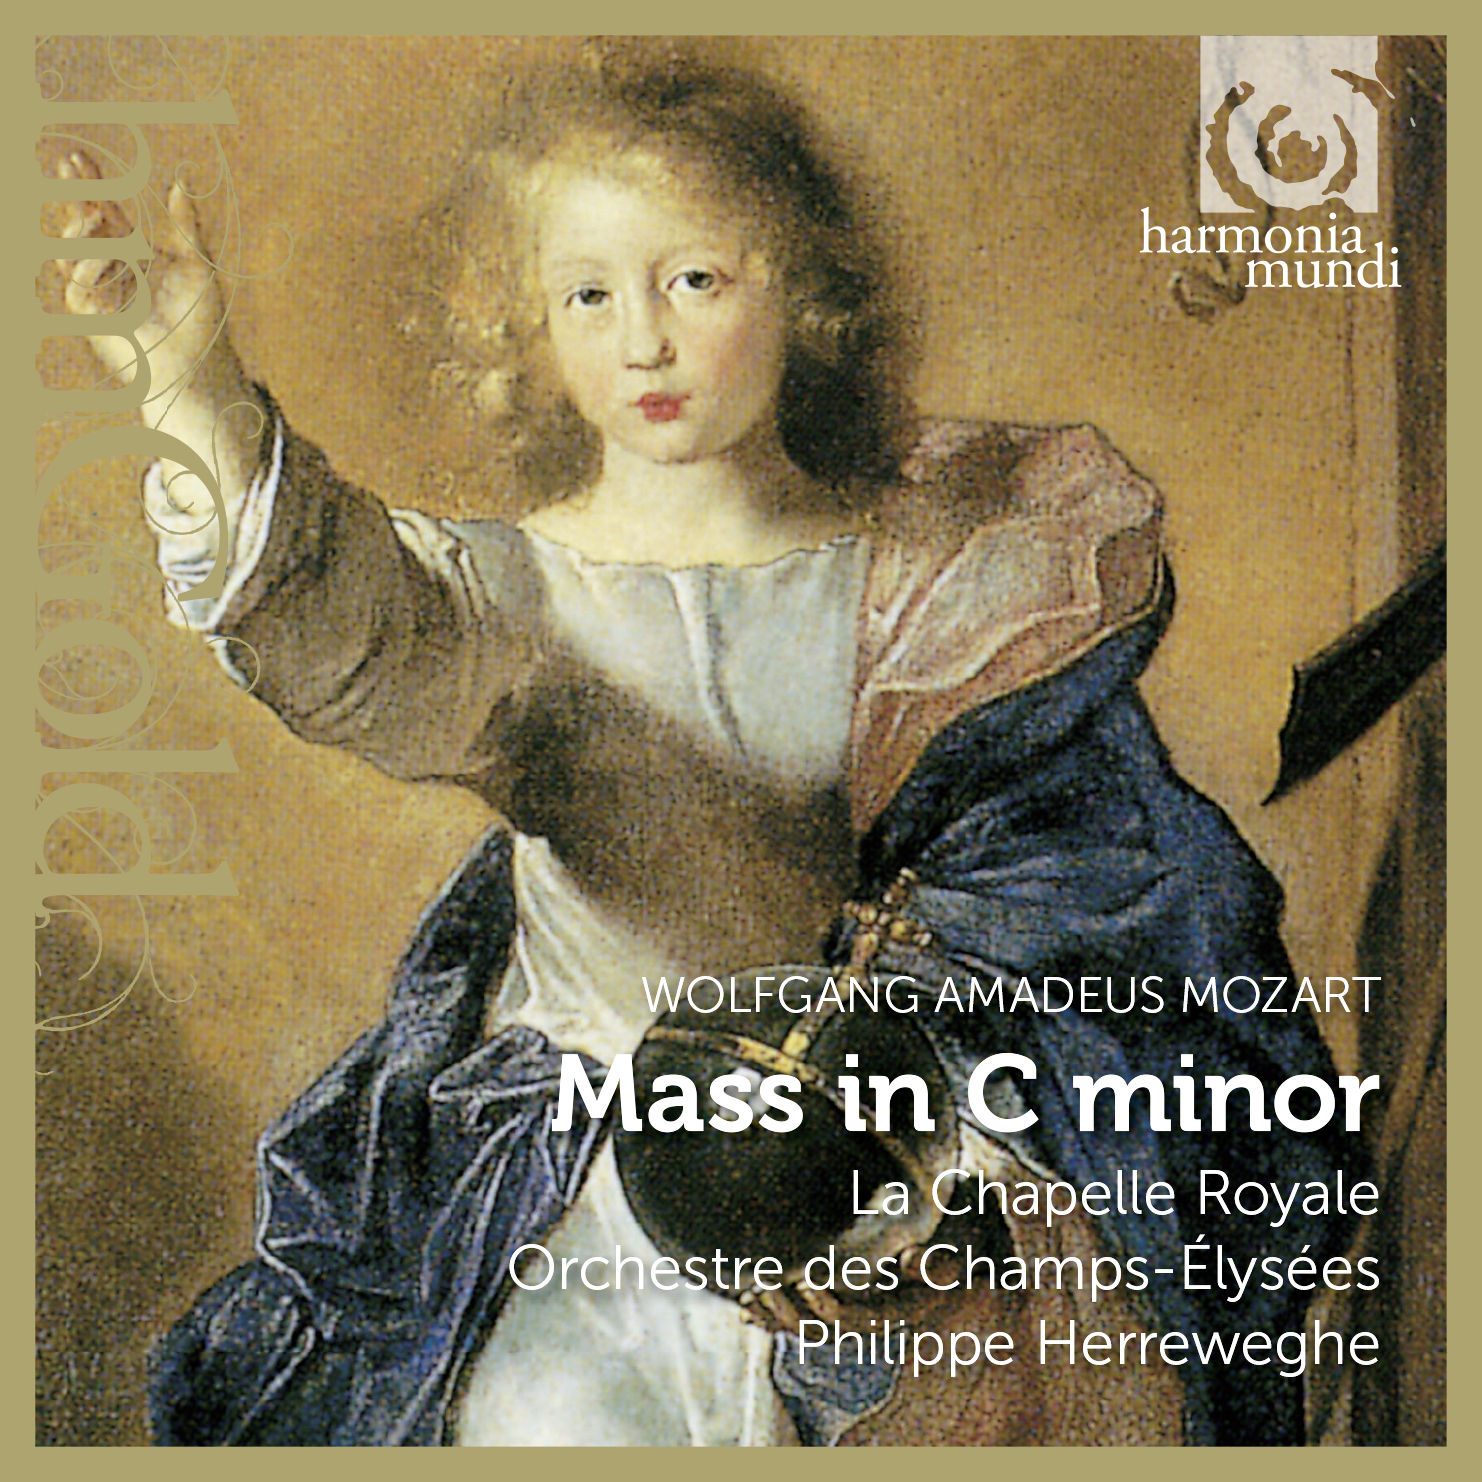 an analysis of mozarts mass in c minor Unlike most editing & proofreading services, we edit for everything: grammar, spelling, punctuation, idea flow, sentence structure, & more get started now.